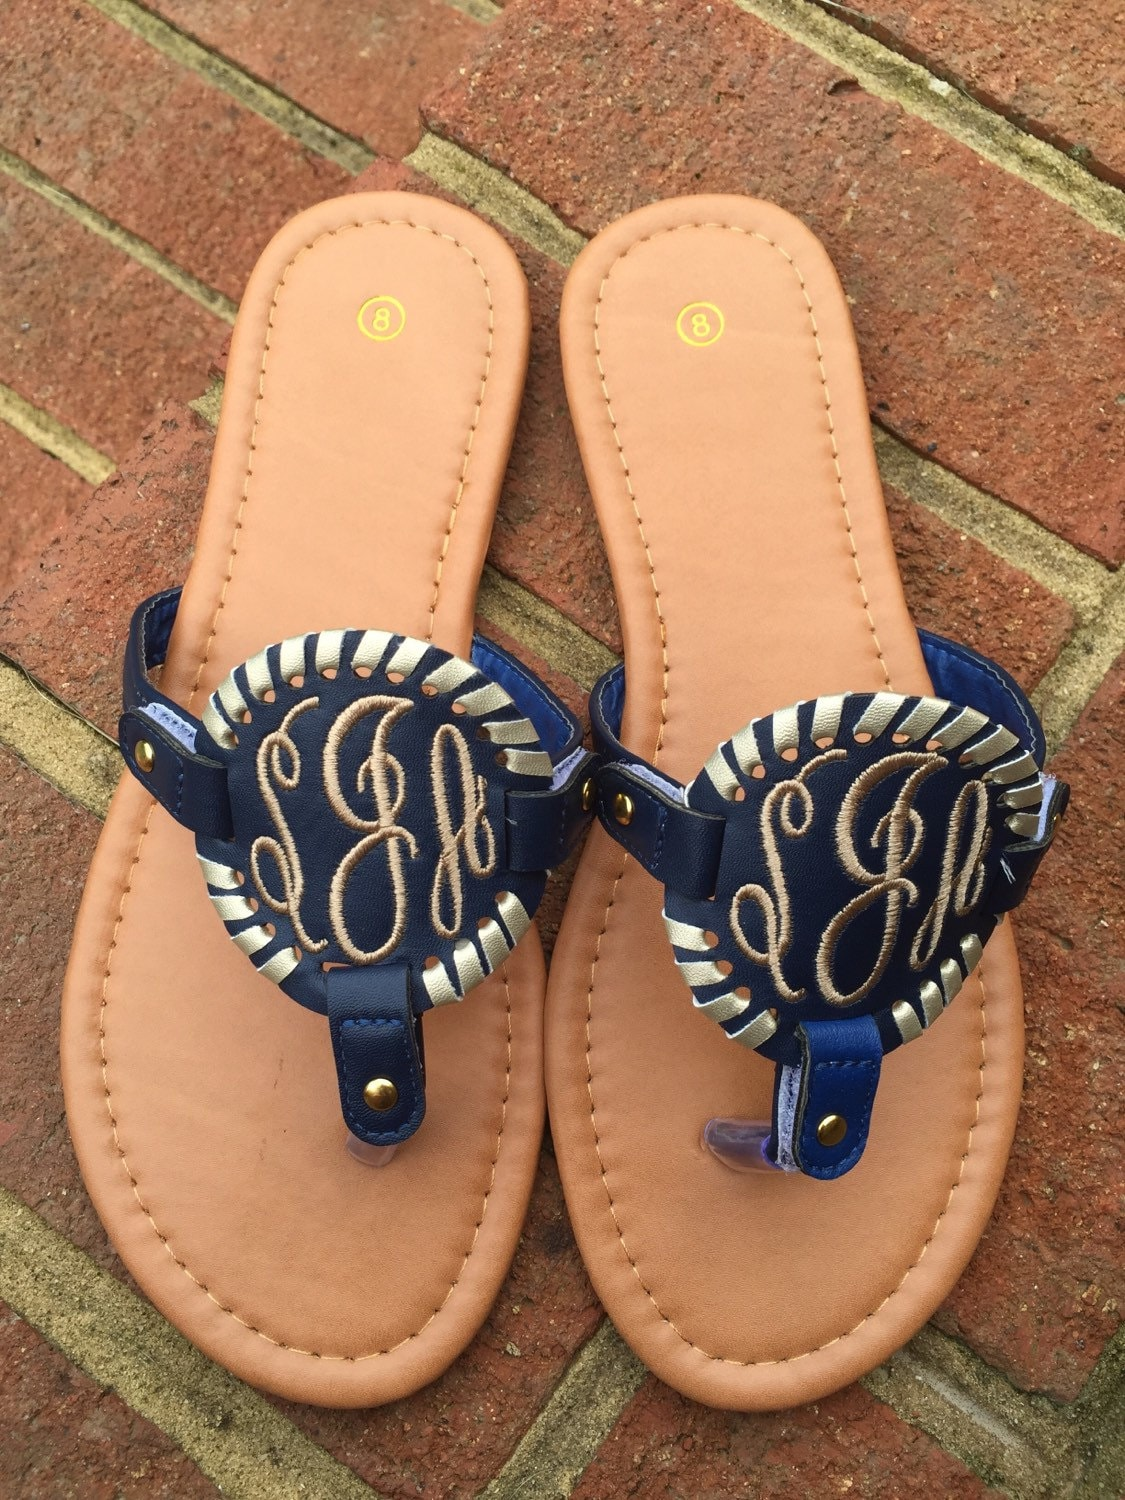 Monogrammed Embroidered Sandals Monogrammed Disk Sandals